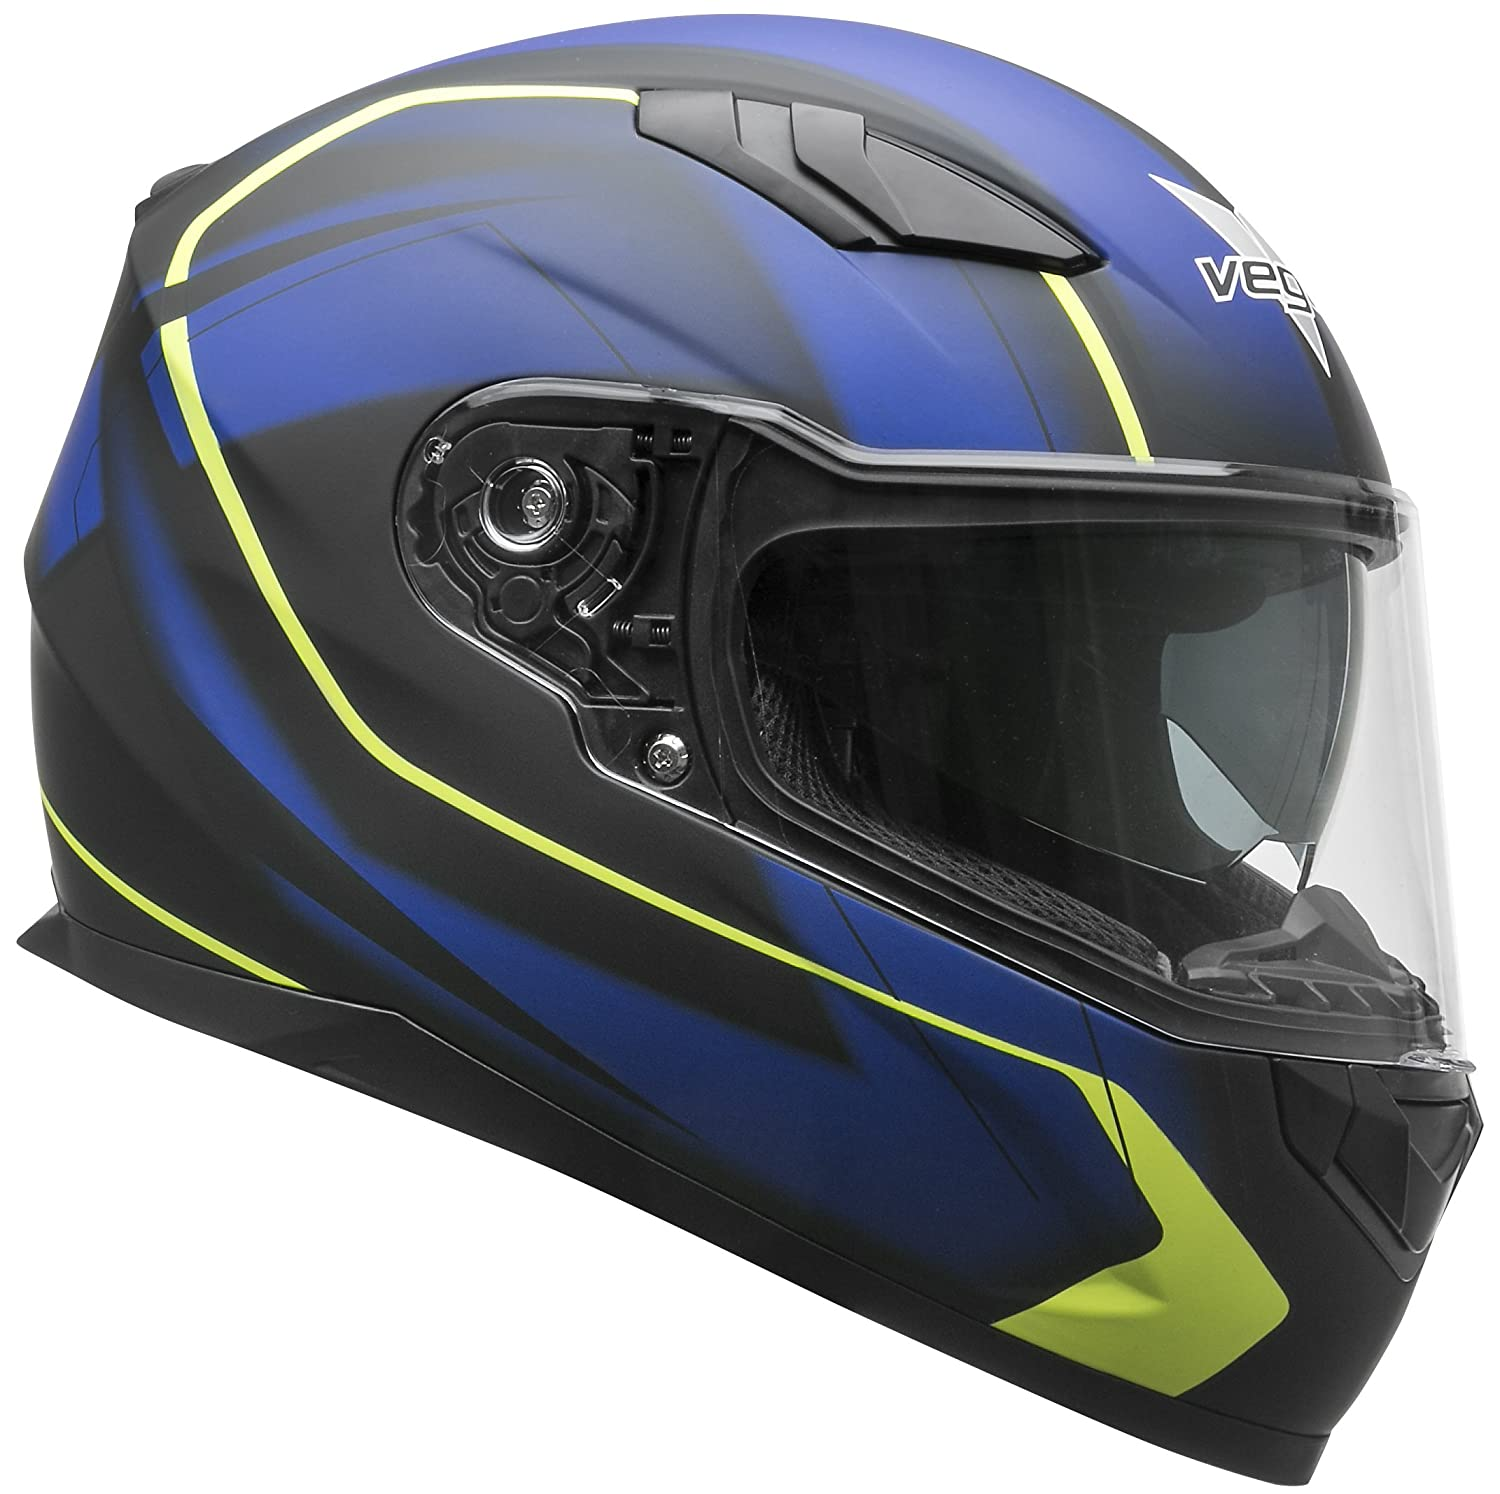 Amazon.com: Vega Helmets RS1 Street Sunshield Motorcycle Helmet - DOT Certified Full Facerbike Helmet for Cruisers Sports Street Bike Scooter Touring Moped, ...